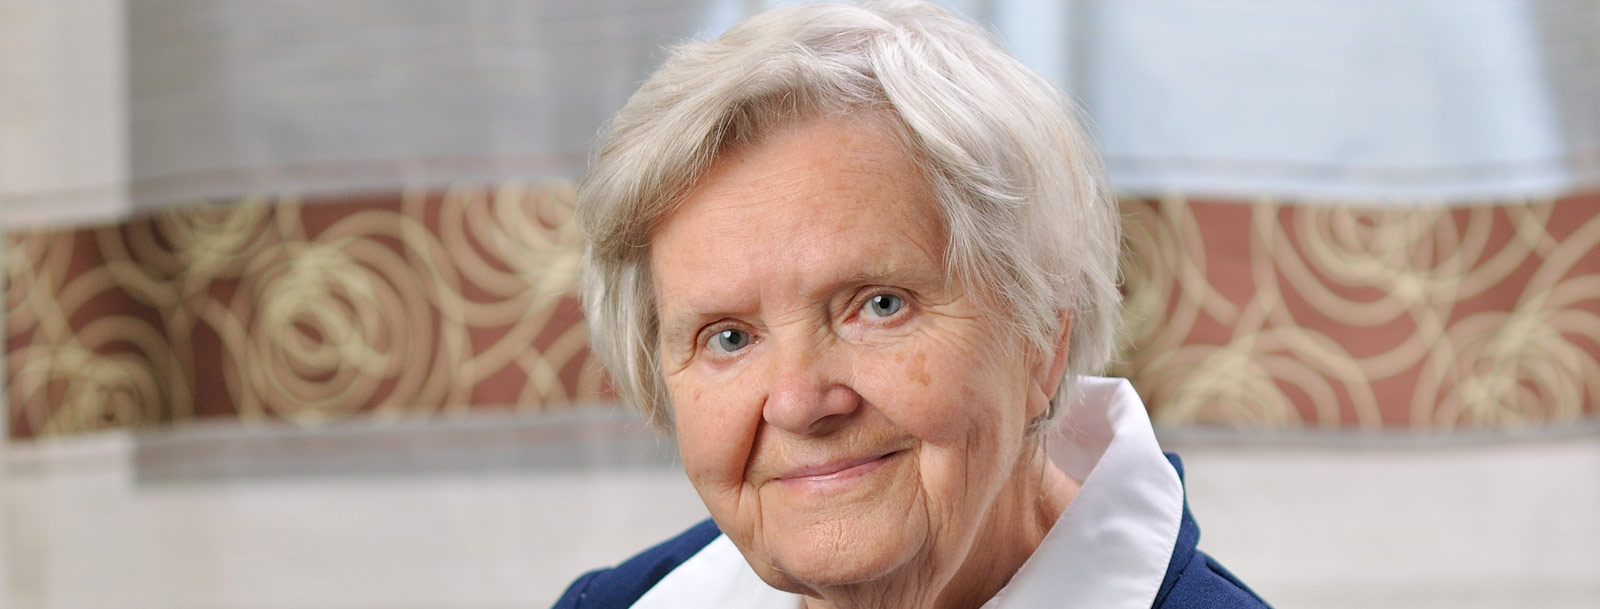 Helpful resources for the senior living facility in Clay Center